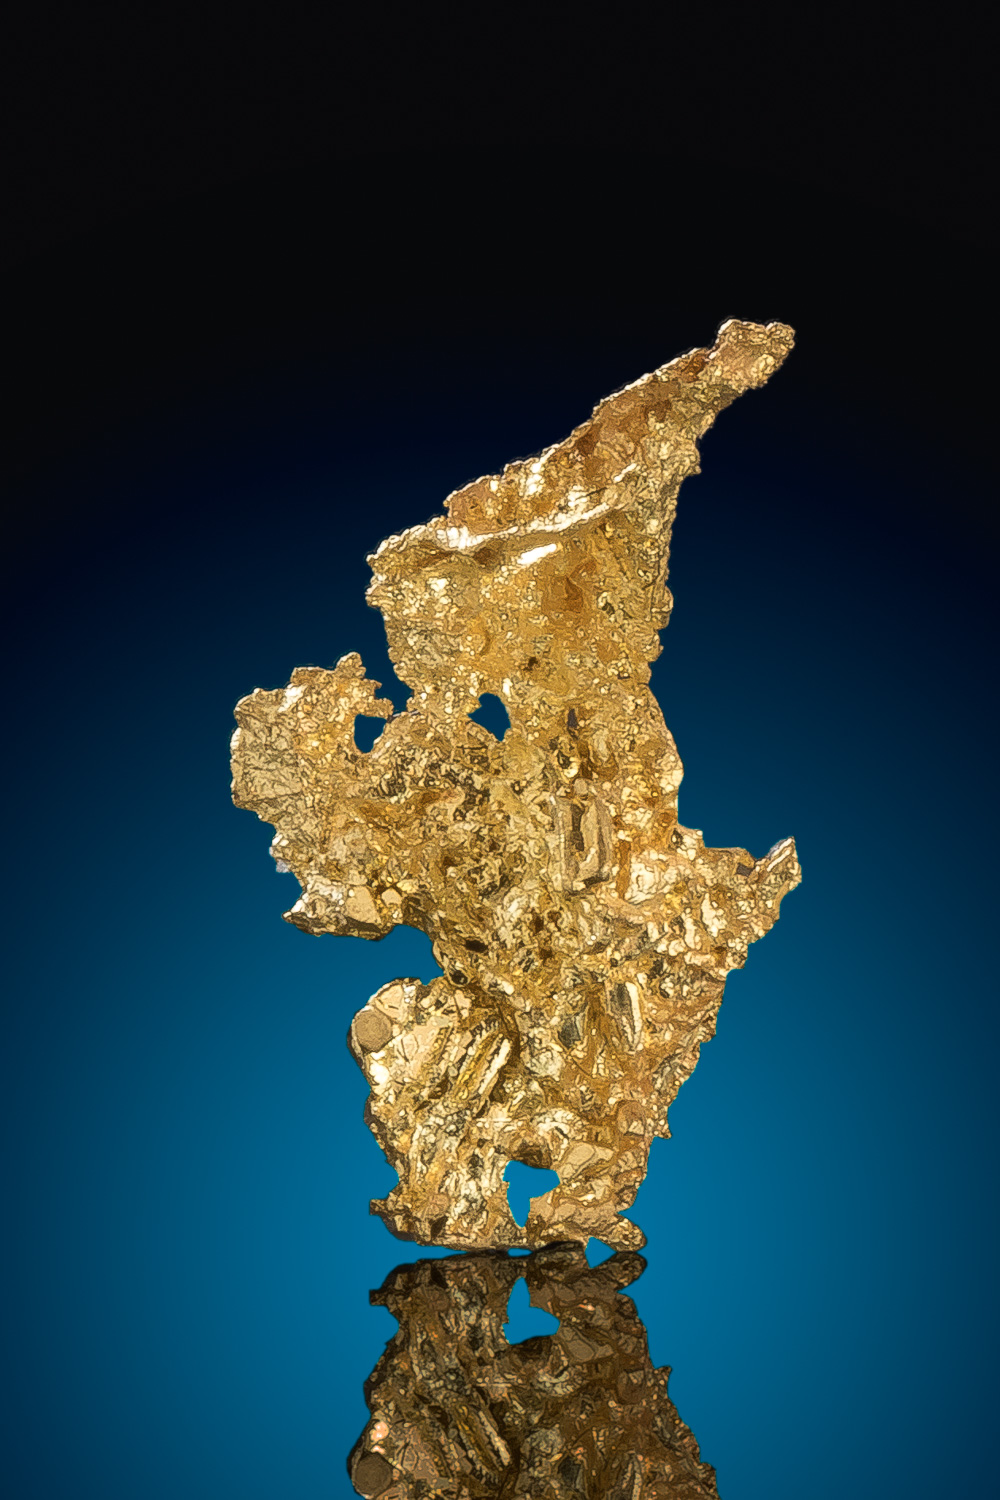 Tapered Crystalline Gold Nugget from the Eagles Nest Mine